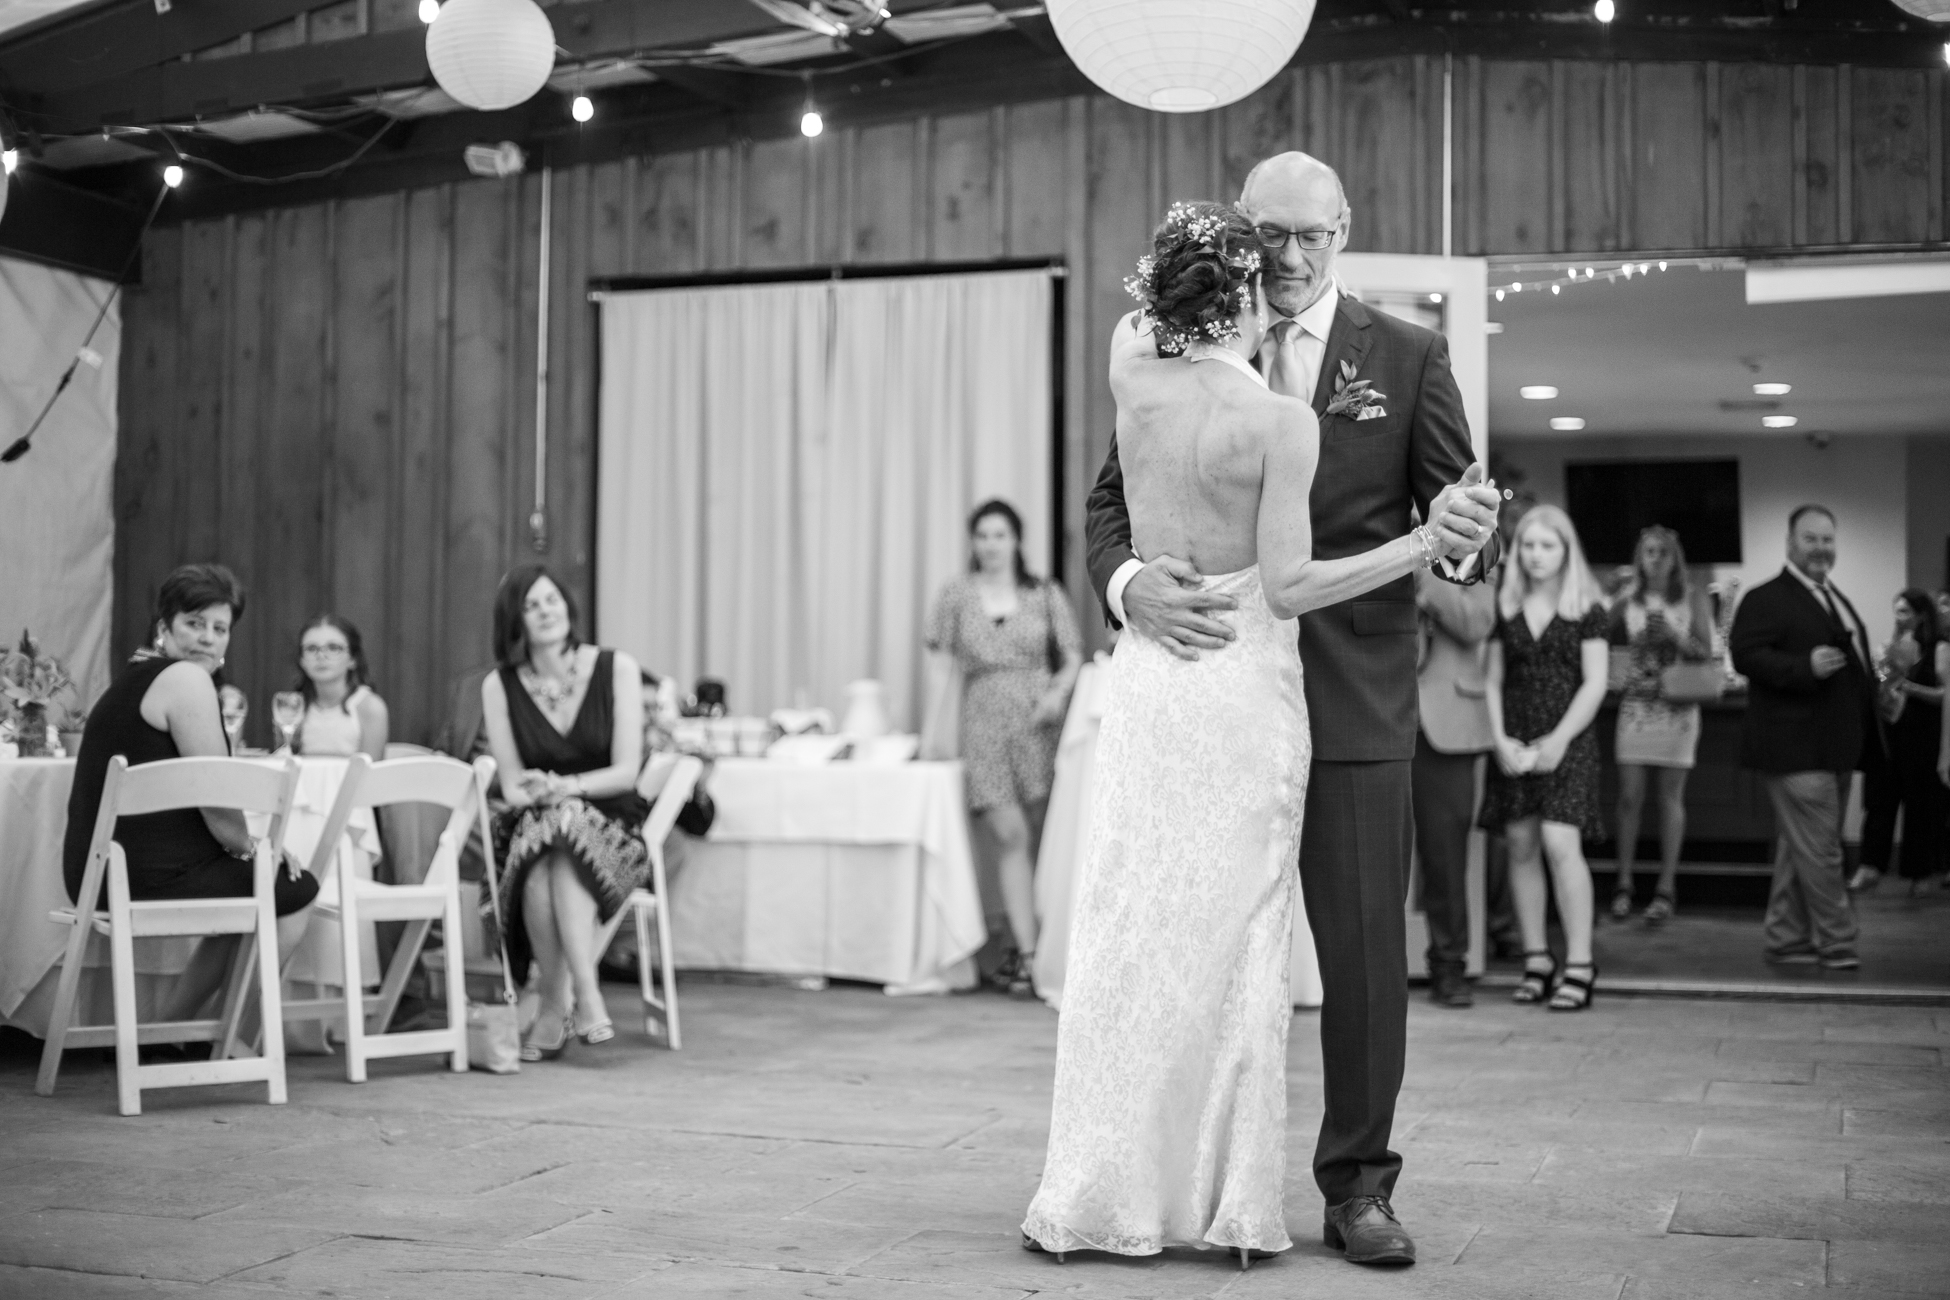 Melton-Kessler Wedding at Valley Green Inn by Avi Loren Fox LLC-49.jpg